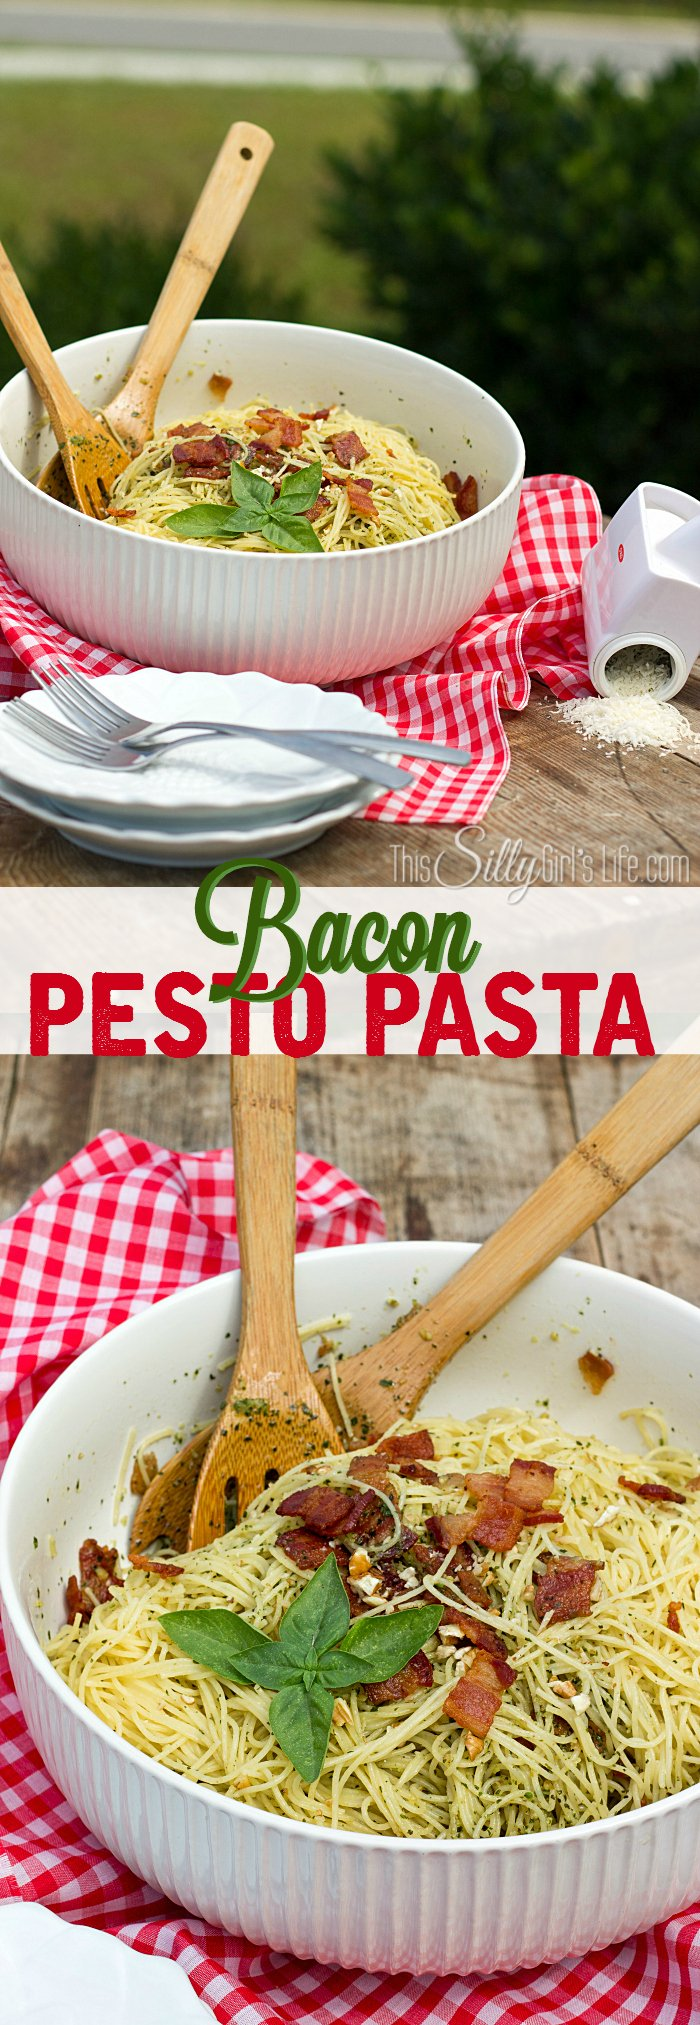 Bacon Pesto Pasta, a quick meal solution for busy weeknight dinners! Homemade pesto, bacon and pasta mix for a winning combo! - ThisSillyGirlsLife.com @Walmart #boldbacon #pestopasta